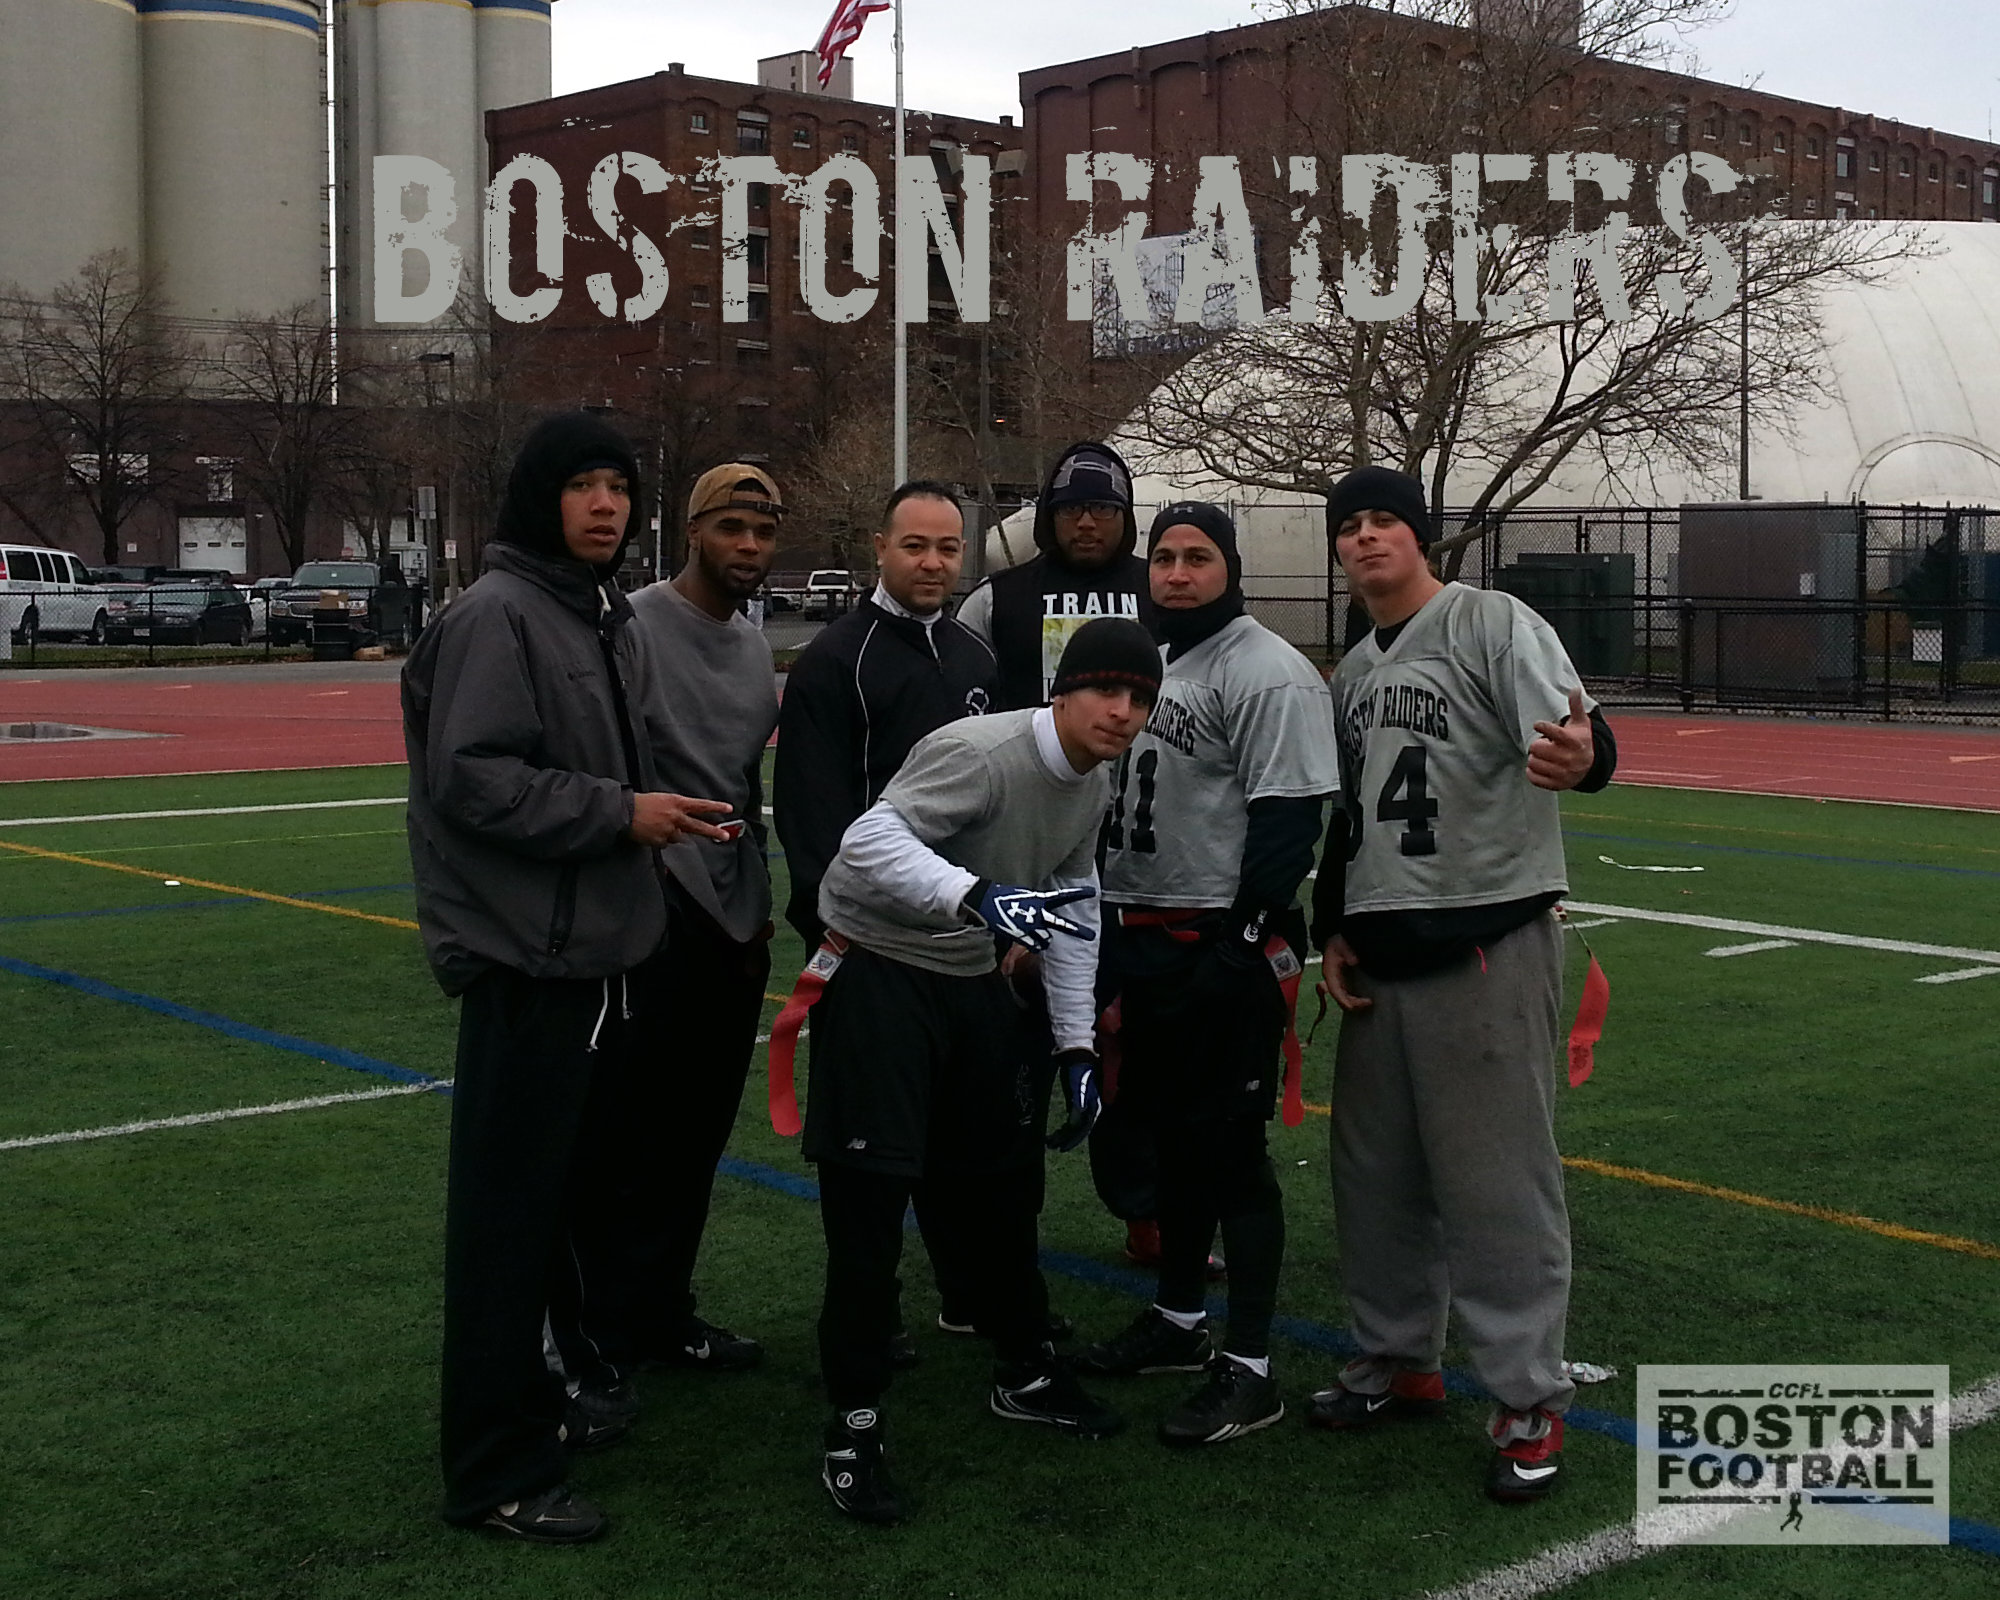 Bostonraiders2014Fall